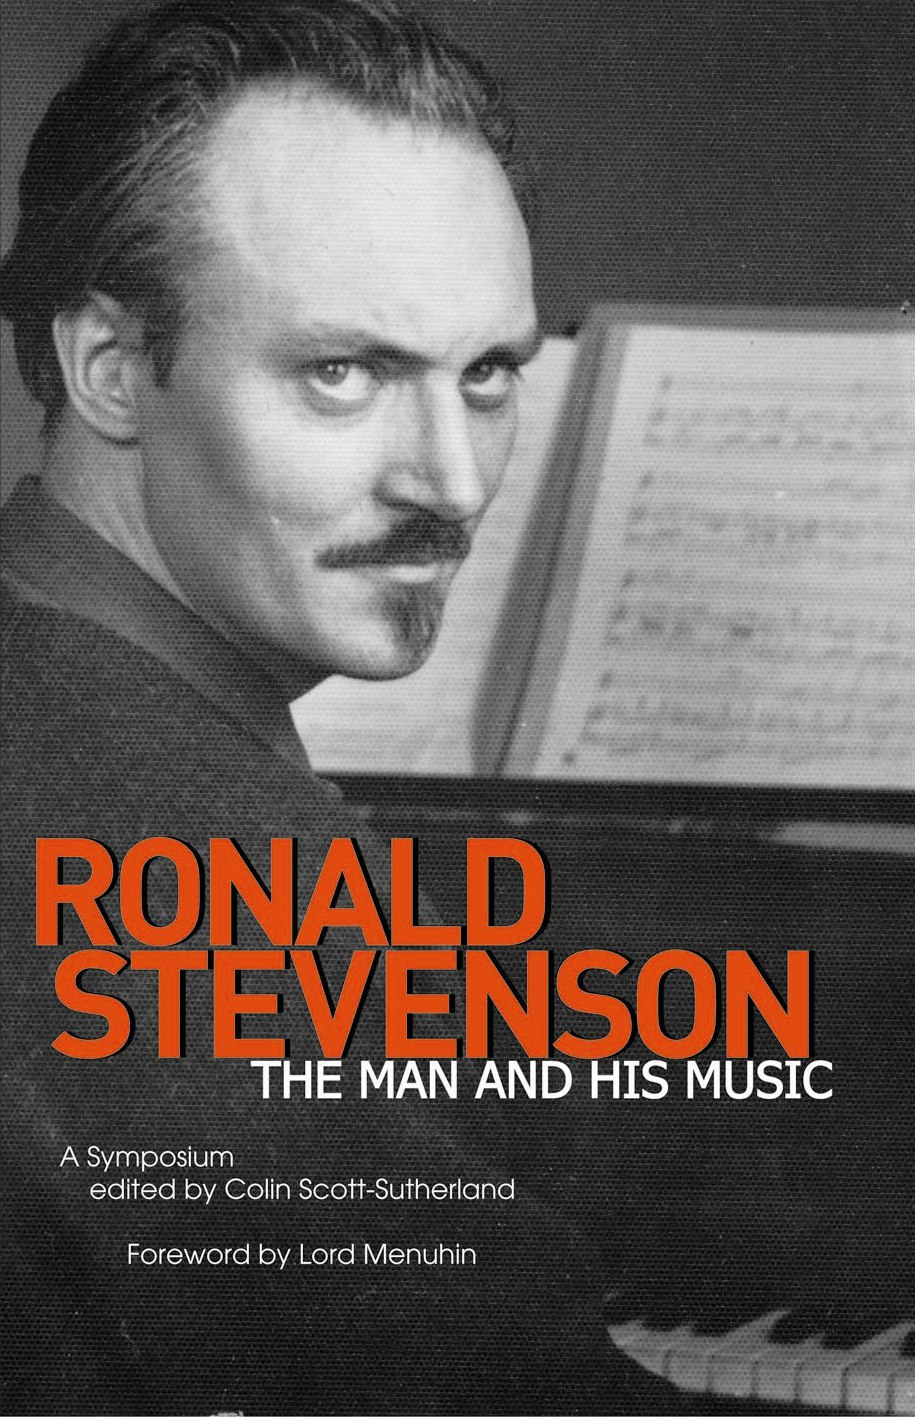 Ronald Stevenson: The Man and his music